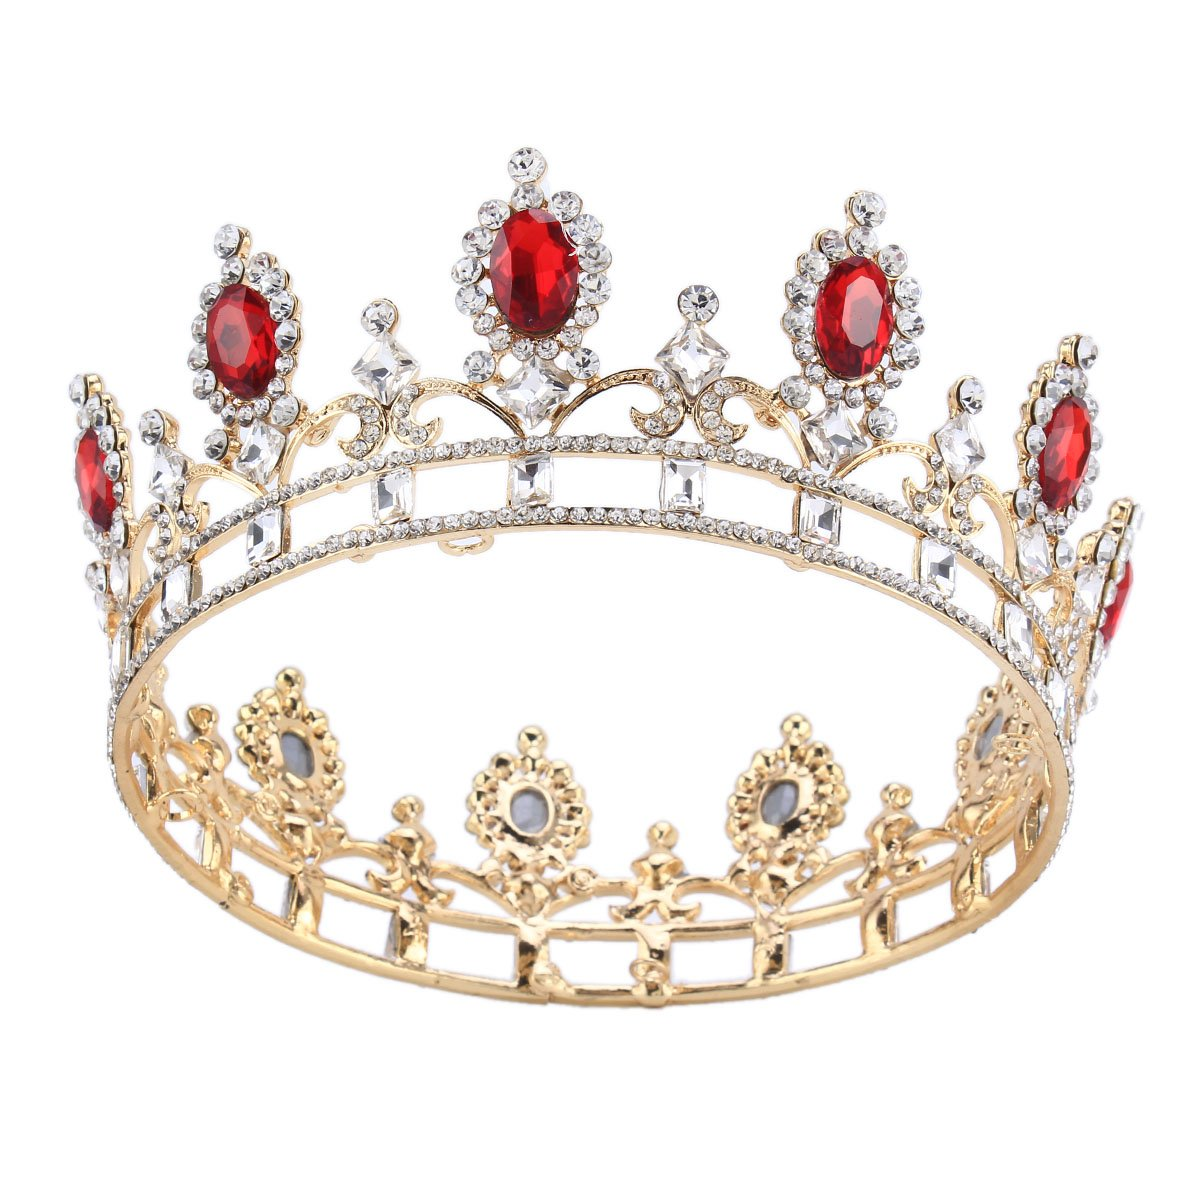 Stuffwholesale Oval Stone Wedding Pageant Crown Rhinestone Women Hair Accessories (Gold)